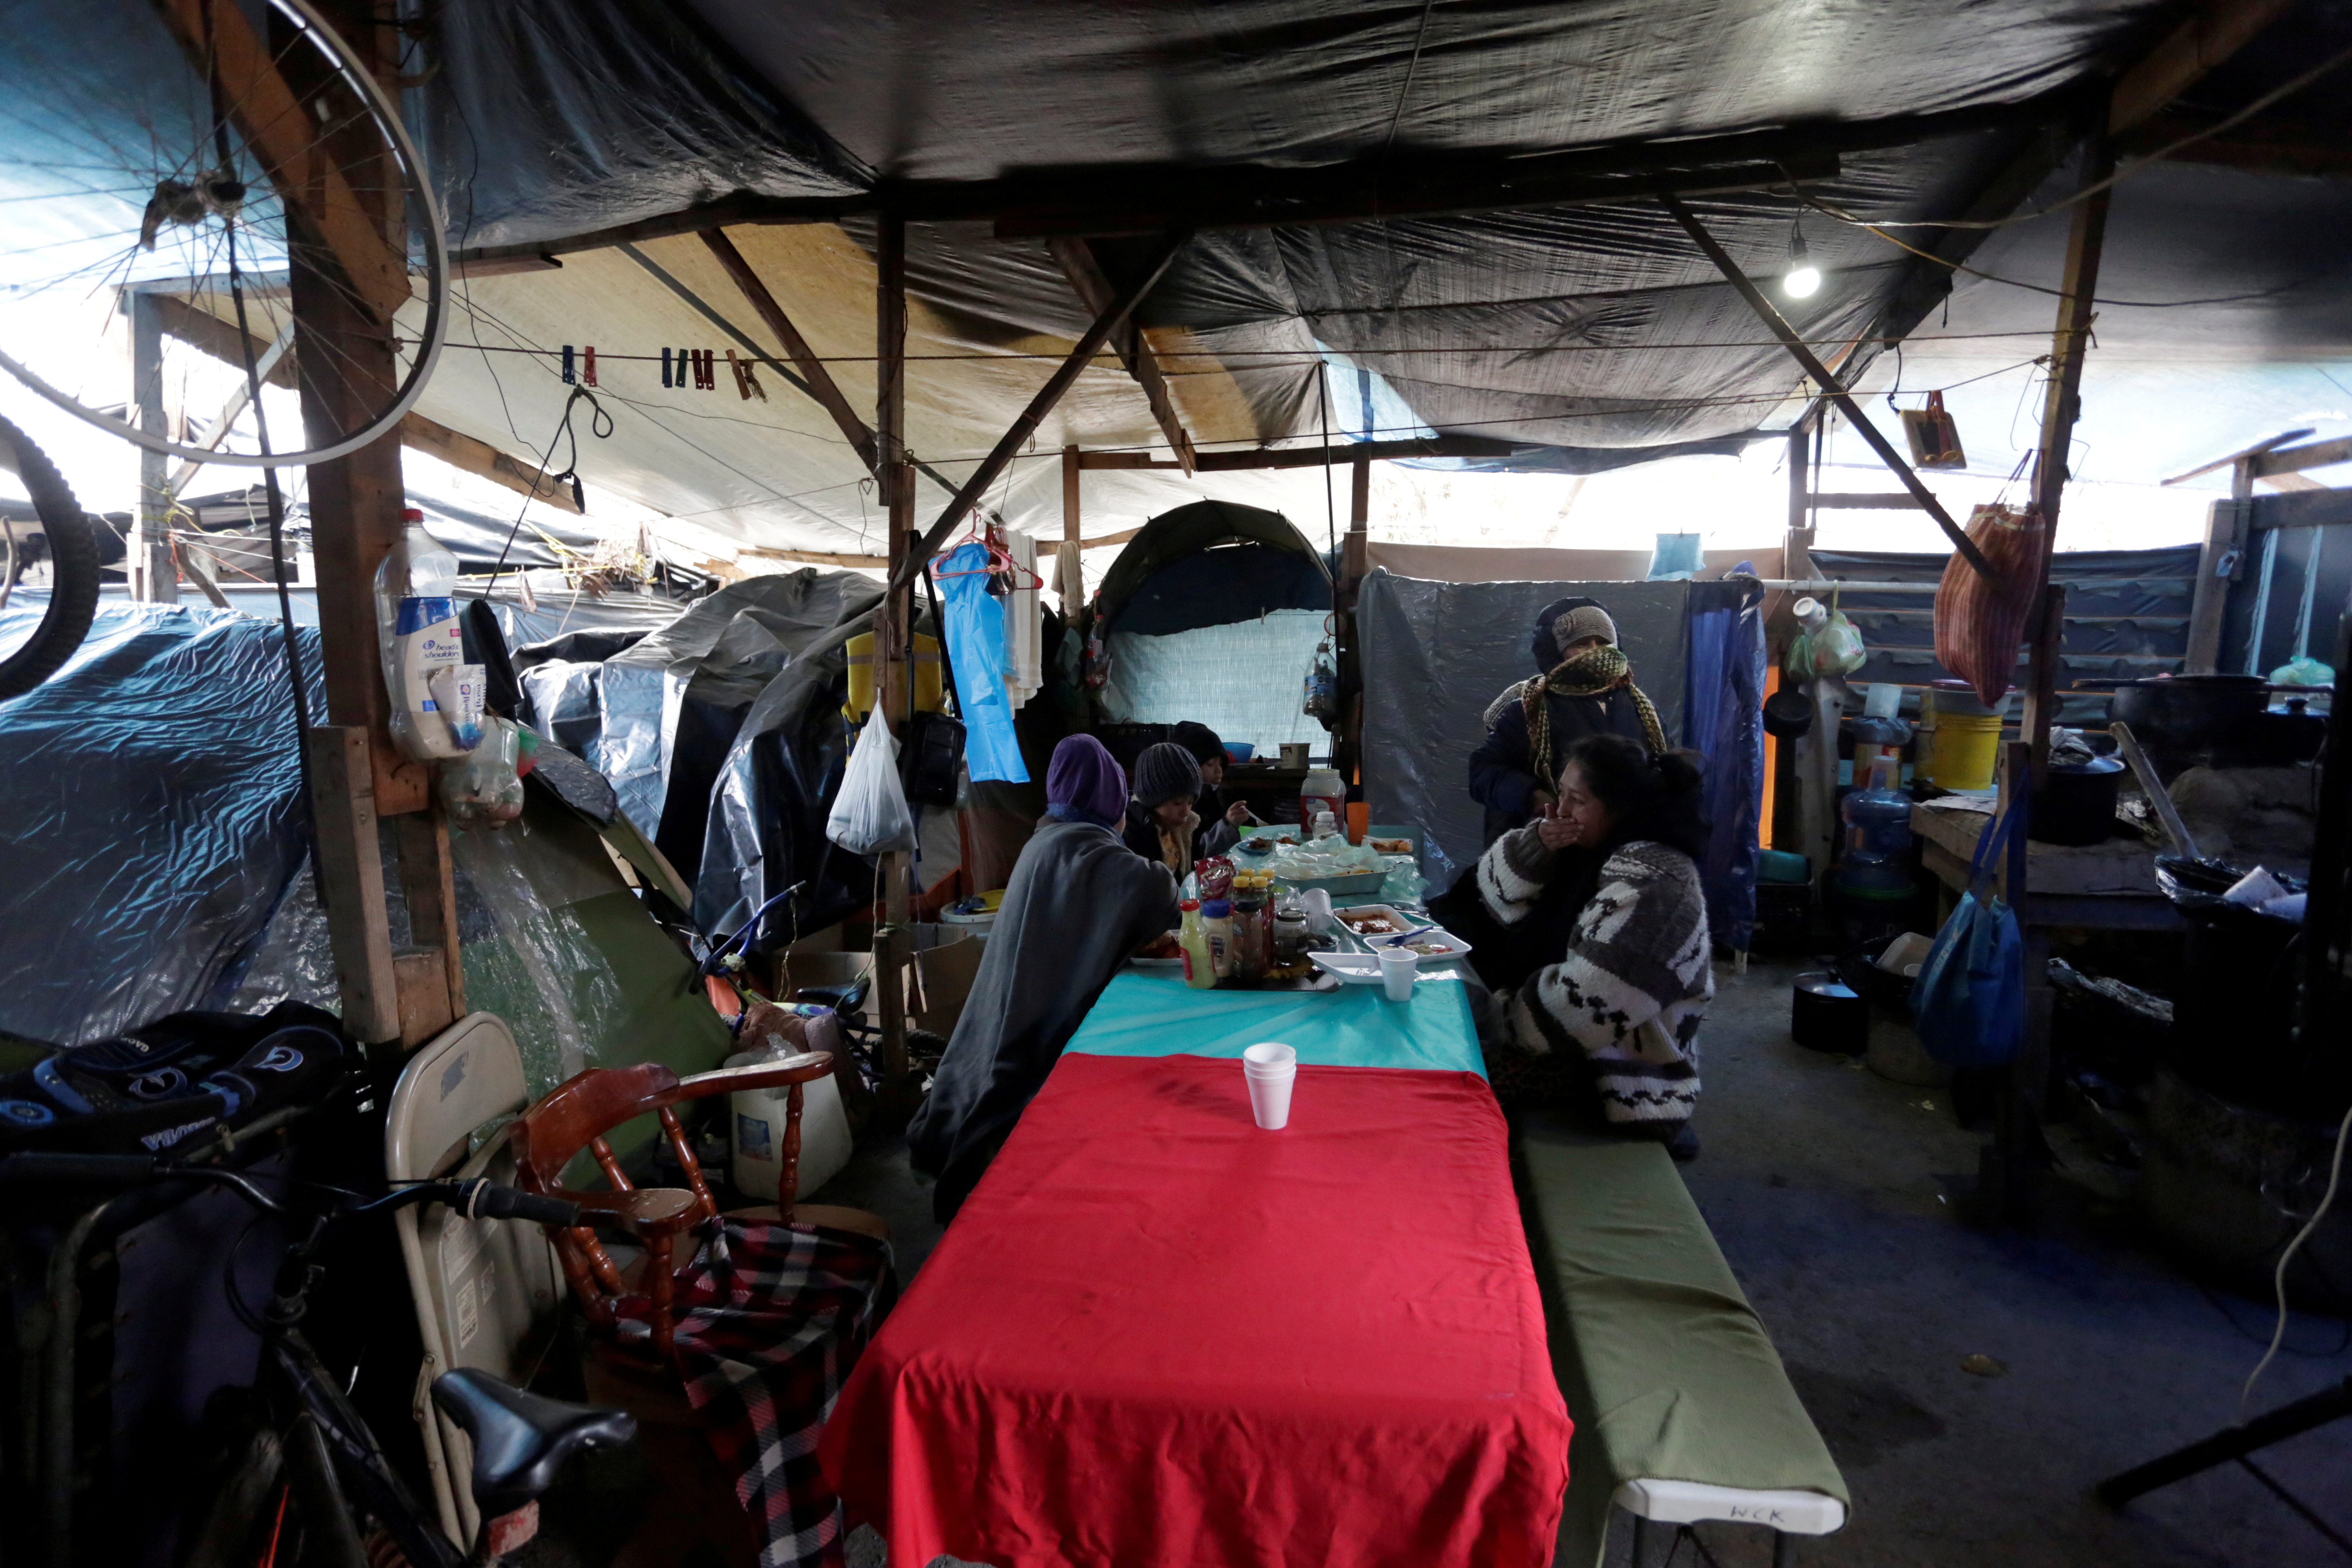 Migrants who traveled to northern Mexico seeking asylum in the United States, are pictured at a migrant encampment in Matamoros, Mexico February 18, 2021. REUTERS/Daniel Becerril/File Photo